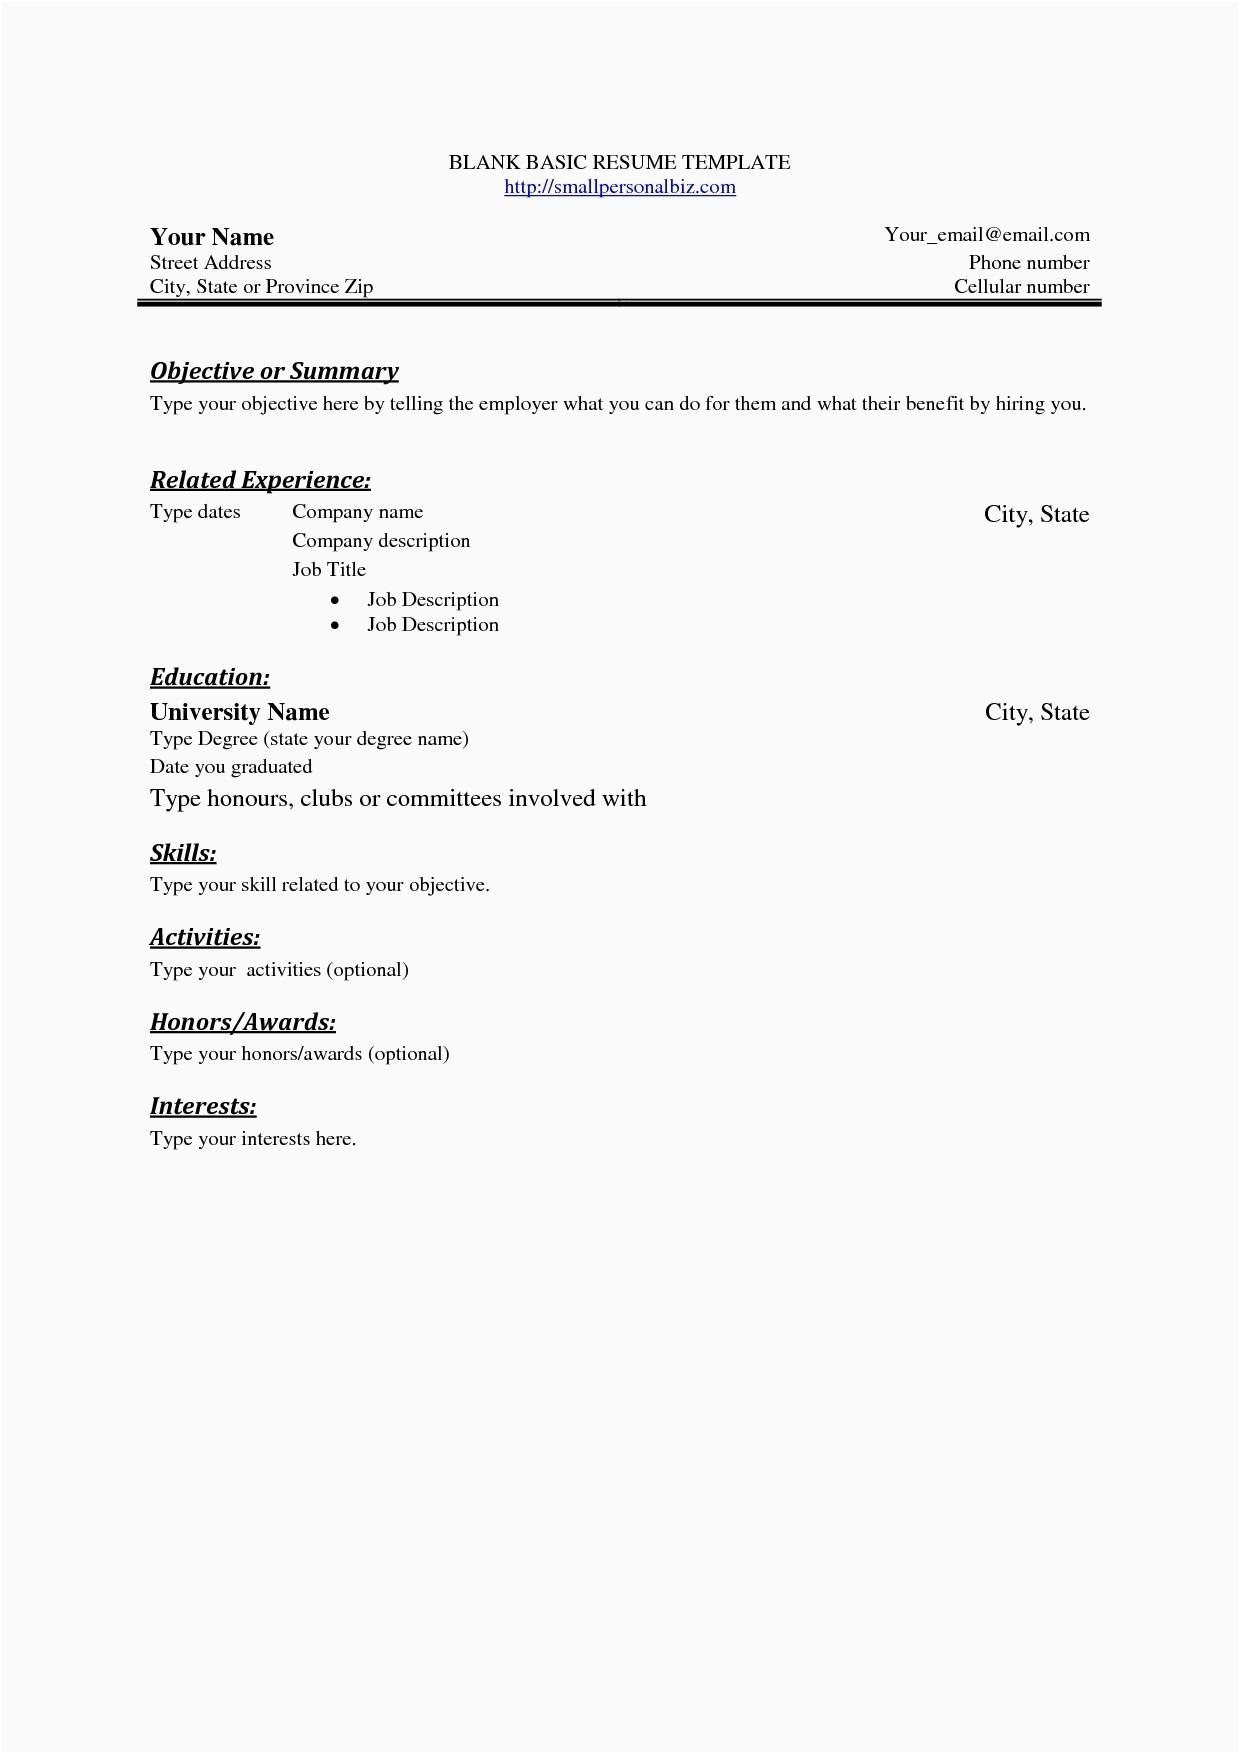 Cfo Resume Template - Free Cease and Desist Letter Template 2018 Cfo Resume Template